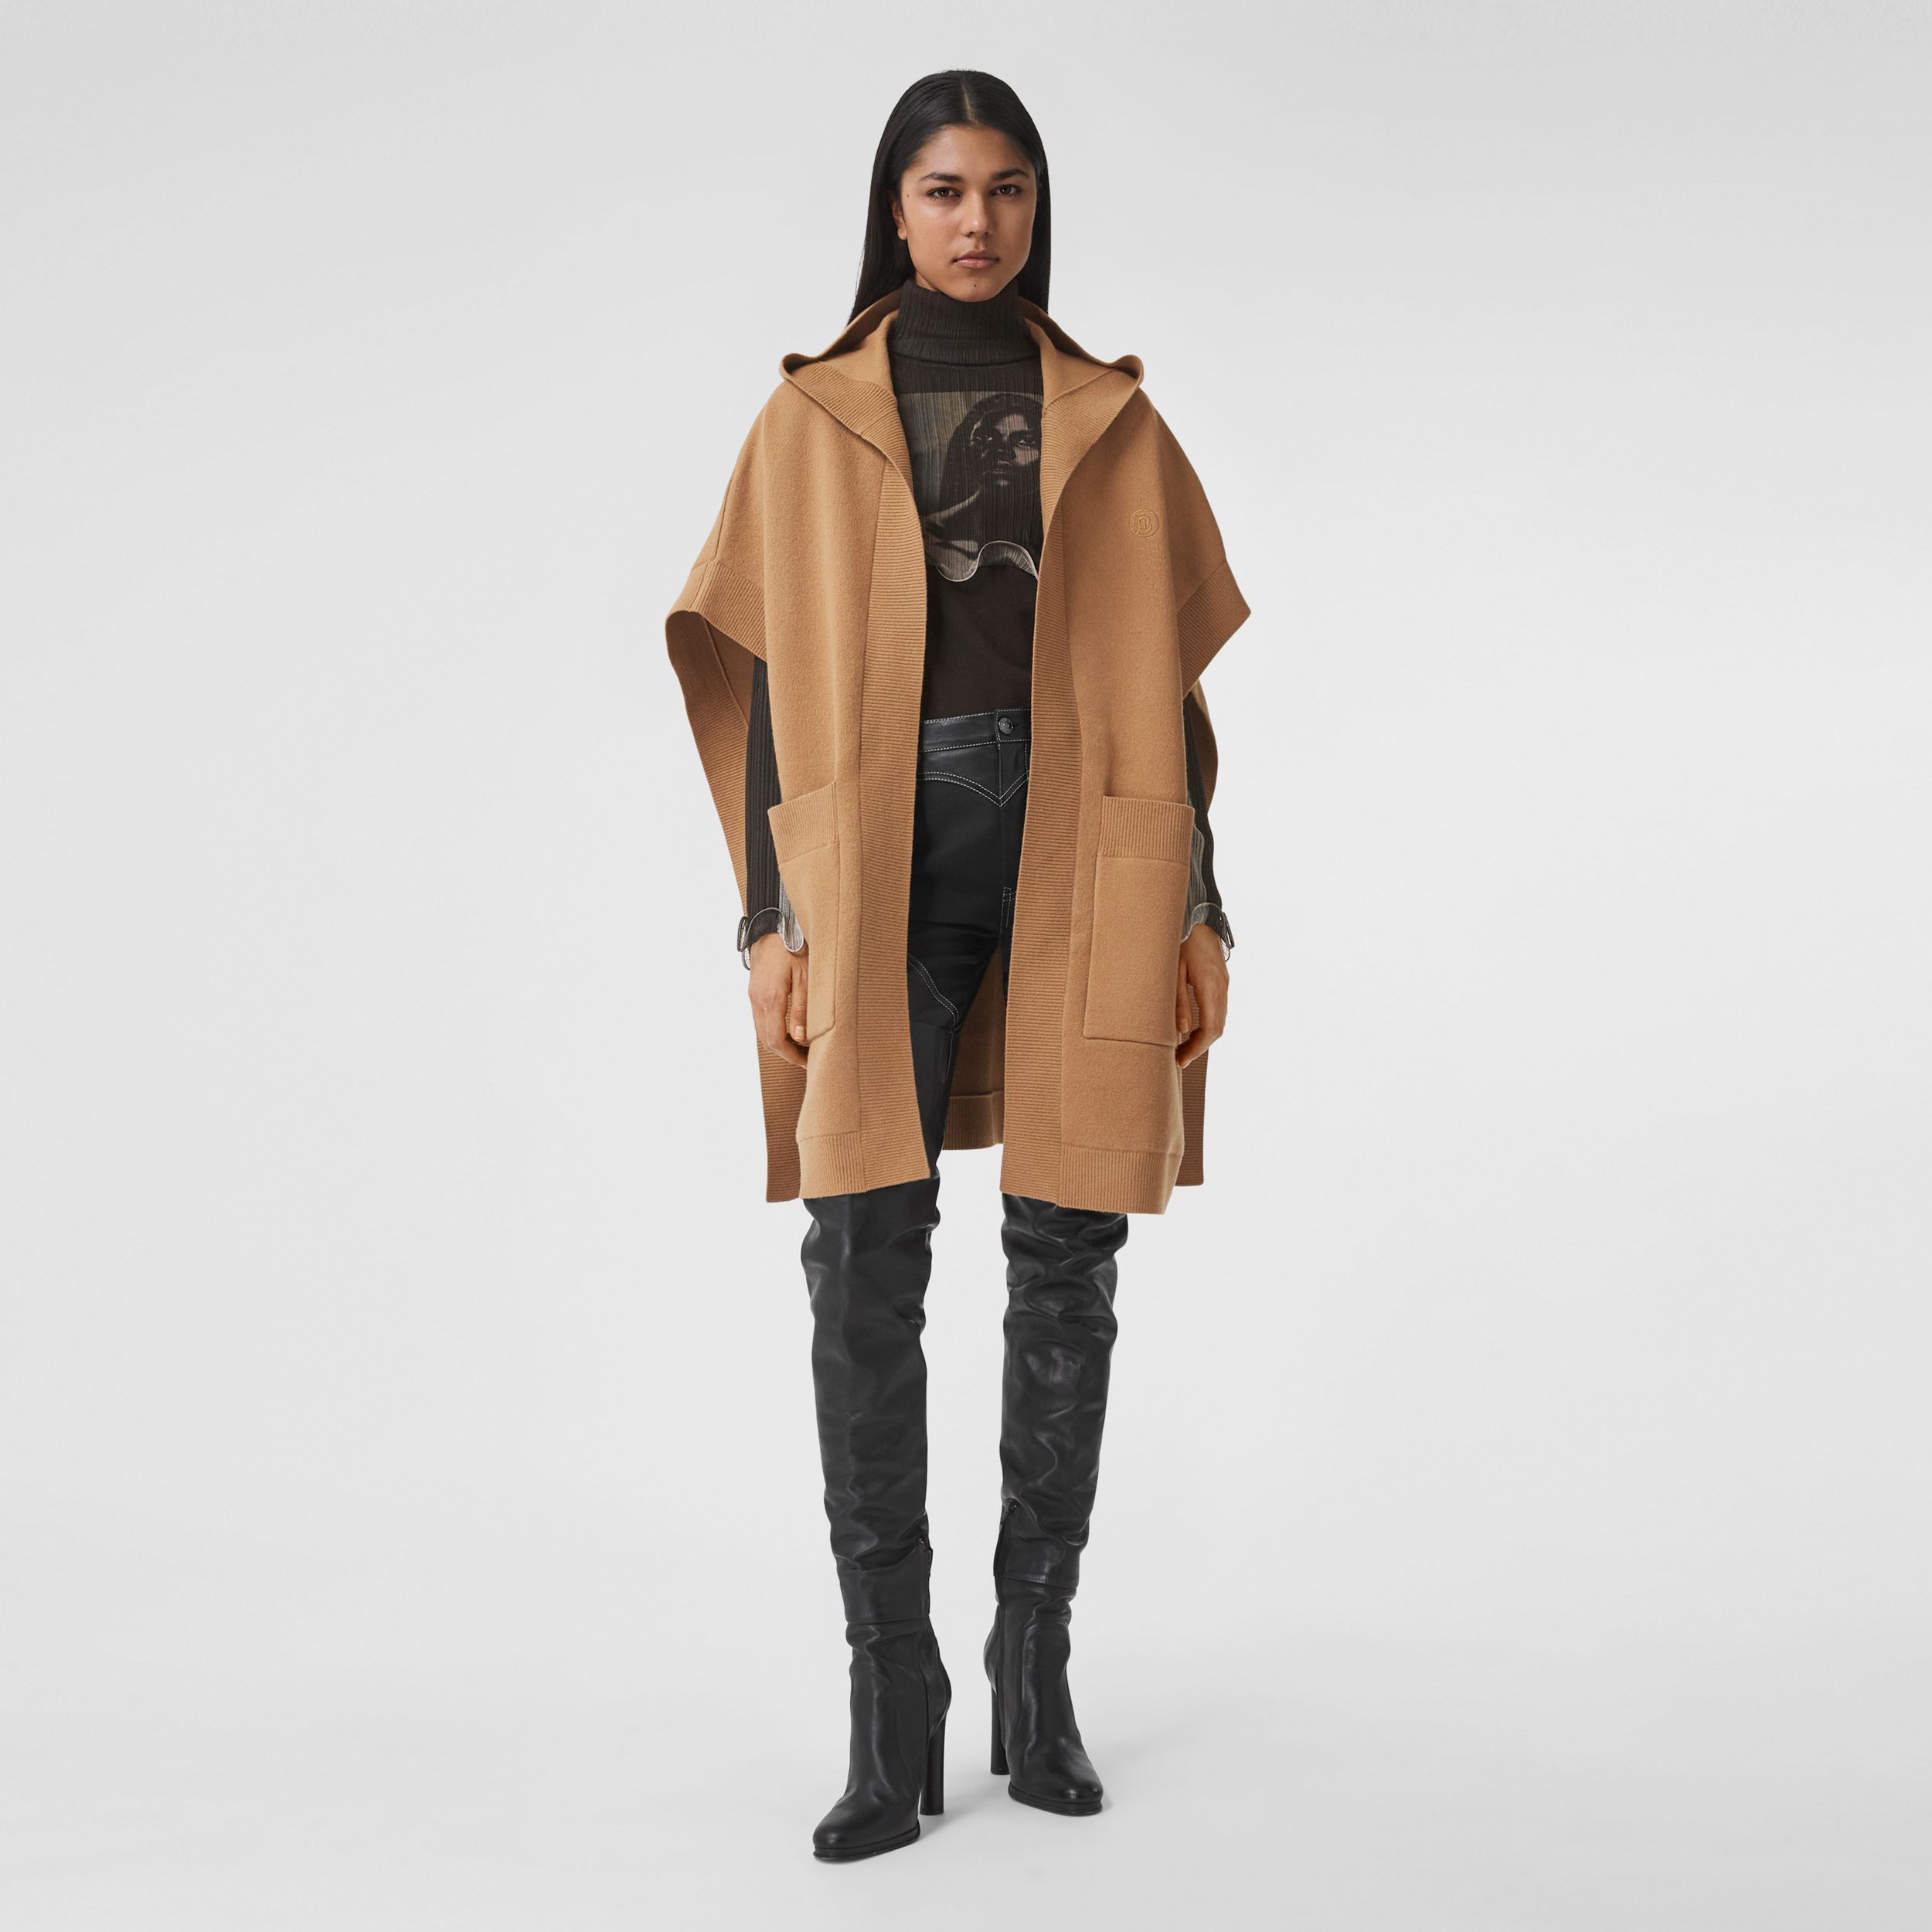 Monogram Motif Cashmere Blend Hooded Cape in Camel - Women | Burberry - 1